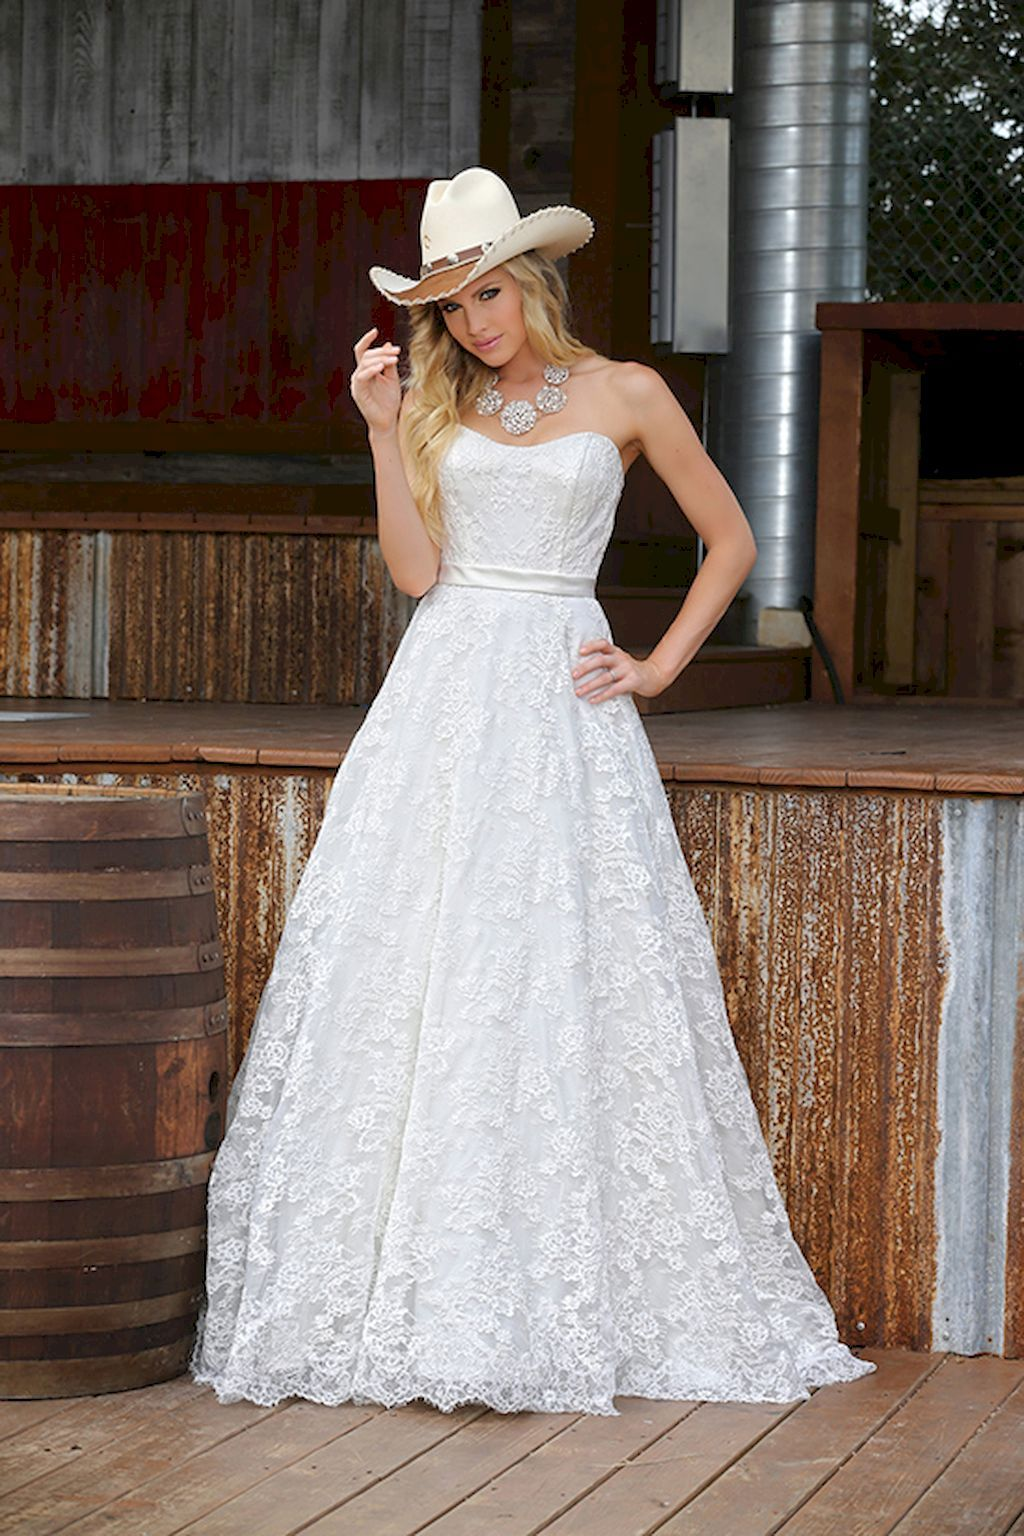 Pin by kyleigh m on beautiful wedding dressus pinterest country